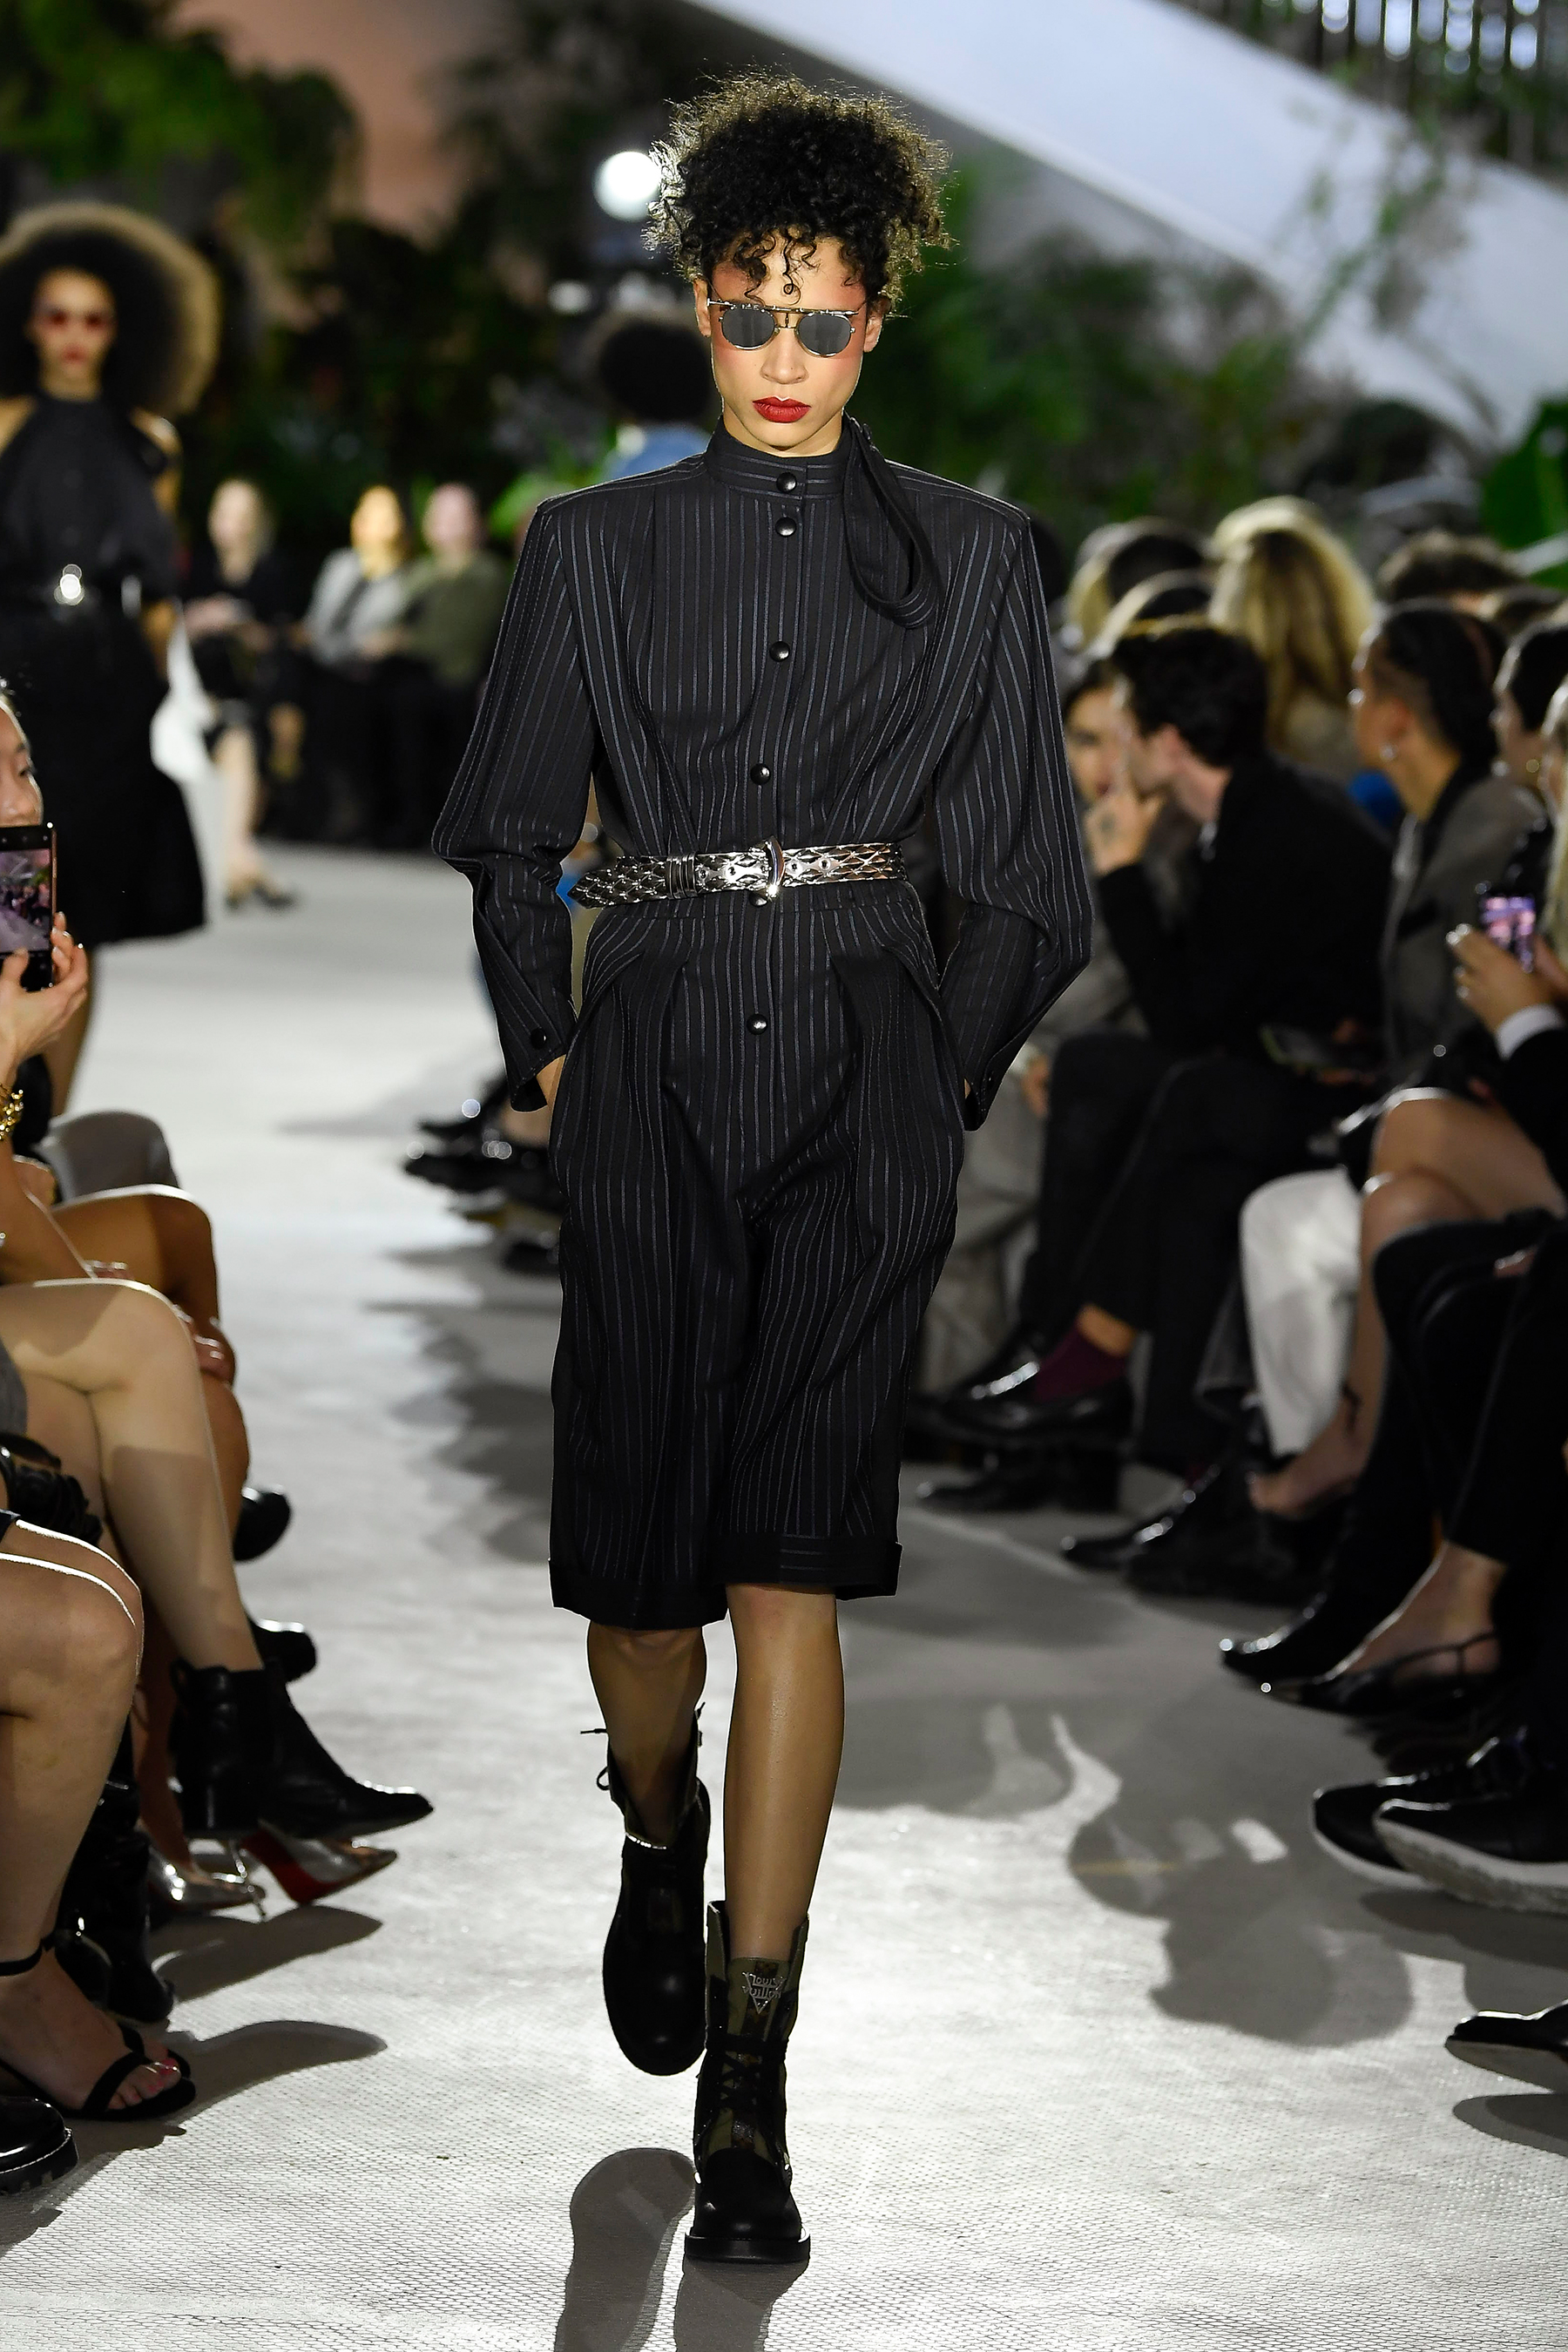 Louis Vuitton Cruise 2020 Fashion Show